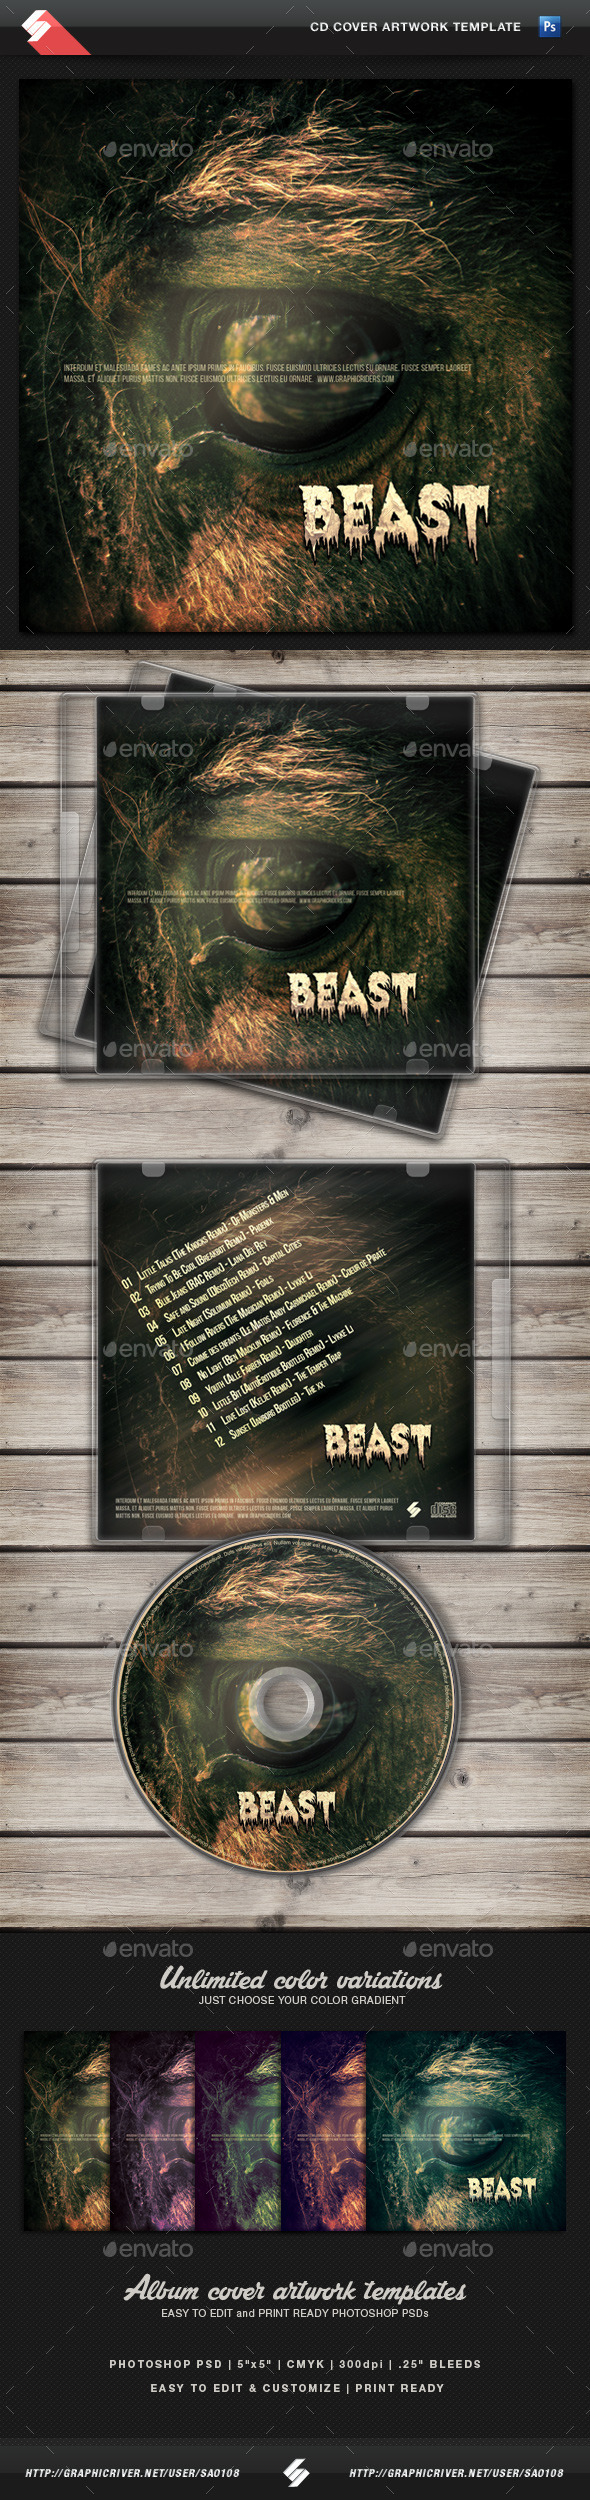 The Beast - CD Cover Artwork Template - CD & DVD Artwork Print Templates